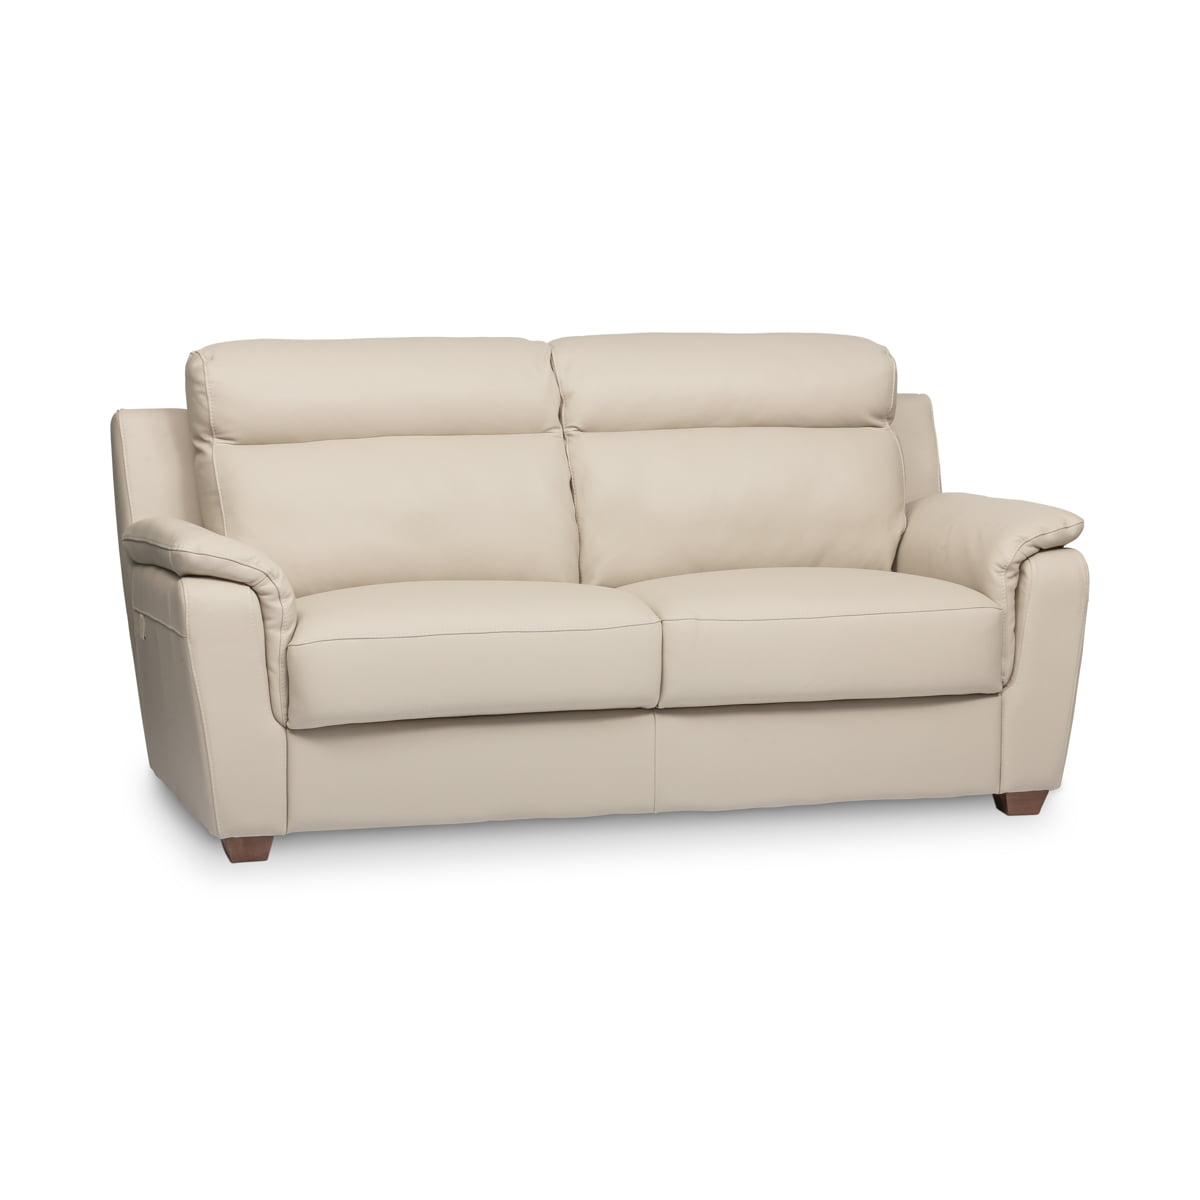 Empirio Leather 3 Seater Sofa